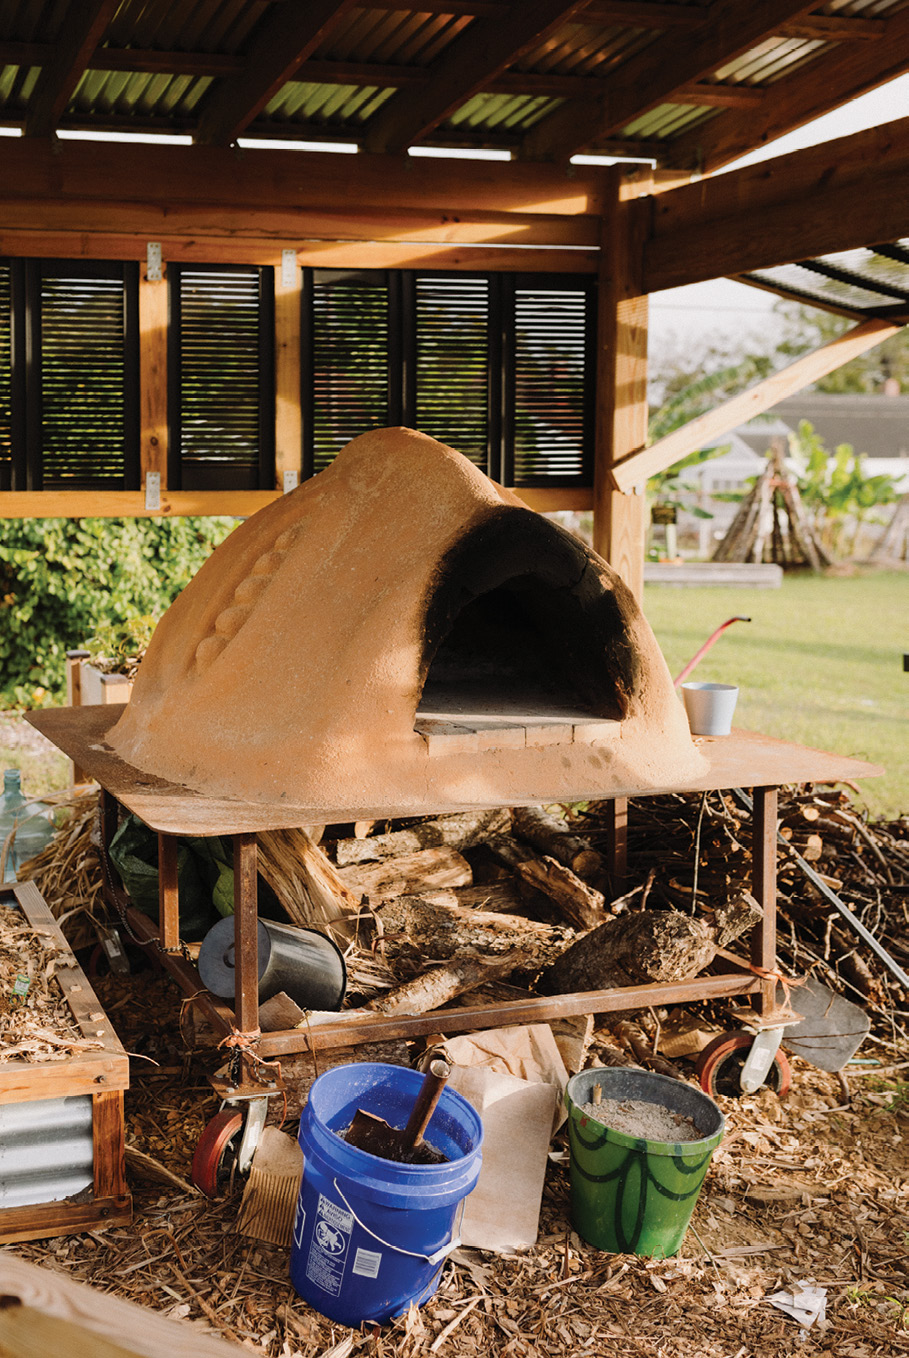 From celebrating cultural roots to baking and breaking bread together (the farm's bread oven)